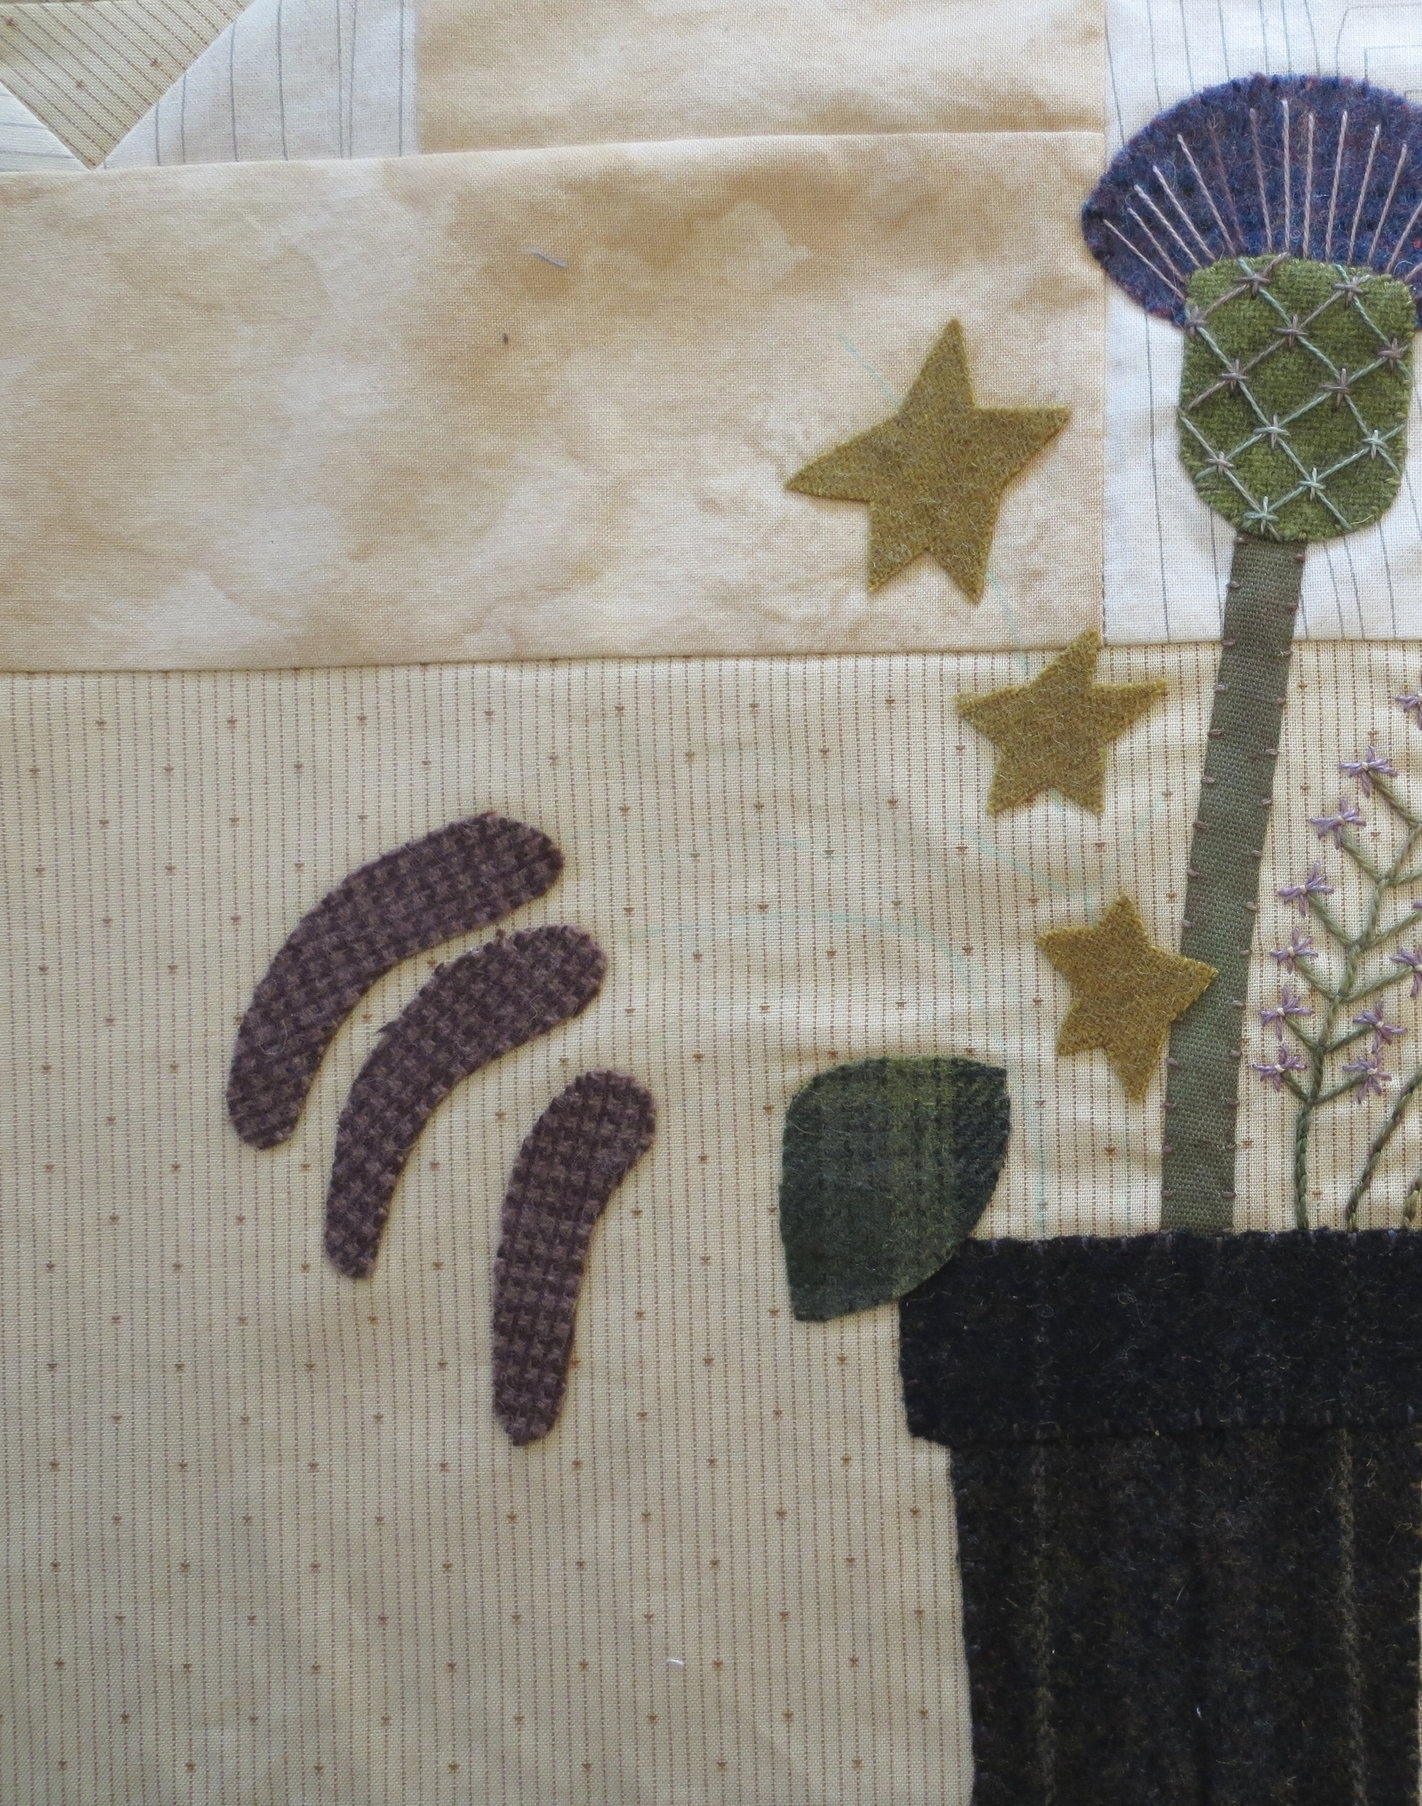 block #2 fusing star & long flowers and leaf 1.jpg